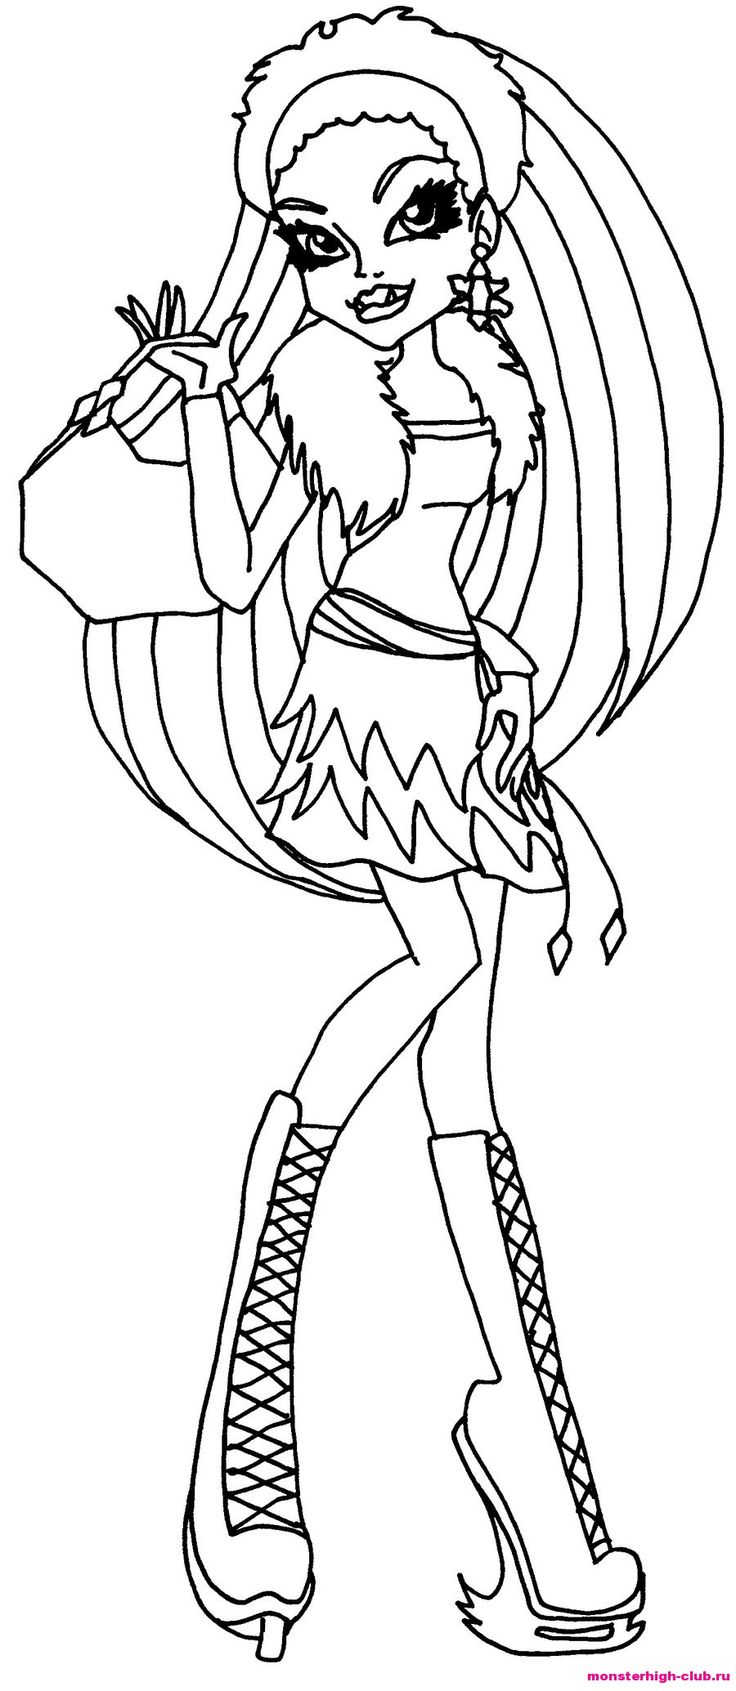 532 best kallie images on pinterest pokemon coloring pages